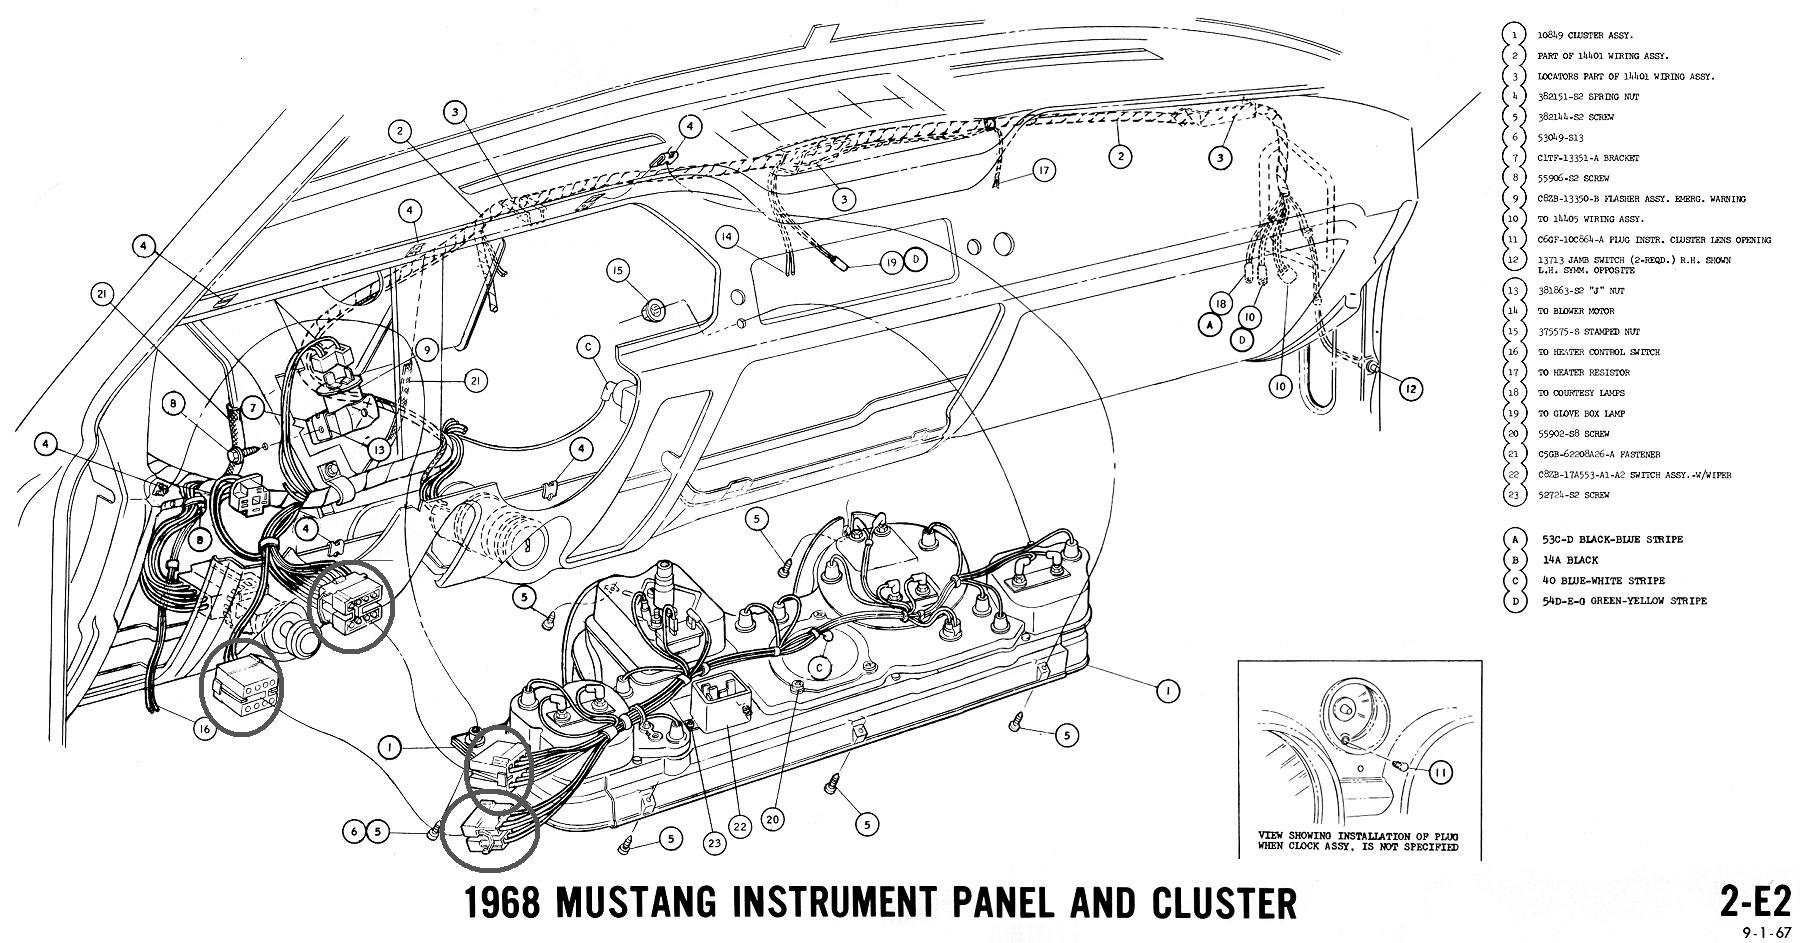 71116d1243836515 electrical help needed 1968 mustang instrument panel2 electrical help needed for 1968 mustang! ford mustang forum 1968 mustang wiring diagrams at bakdesigns.co